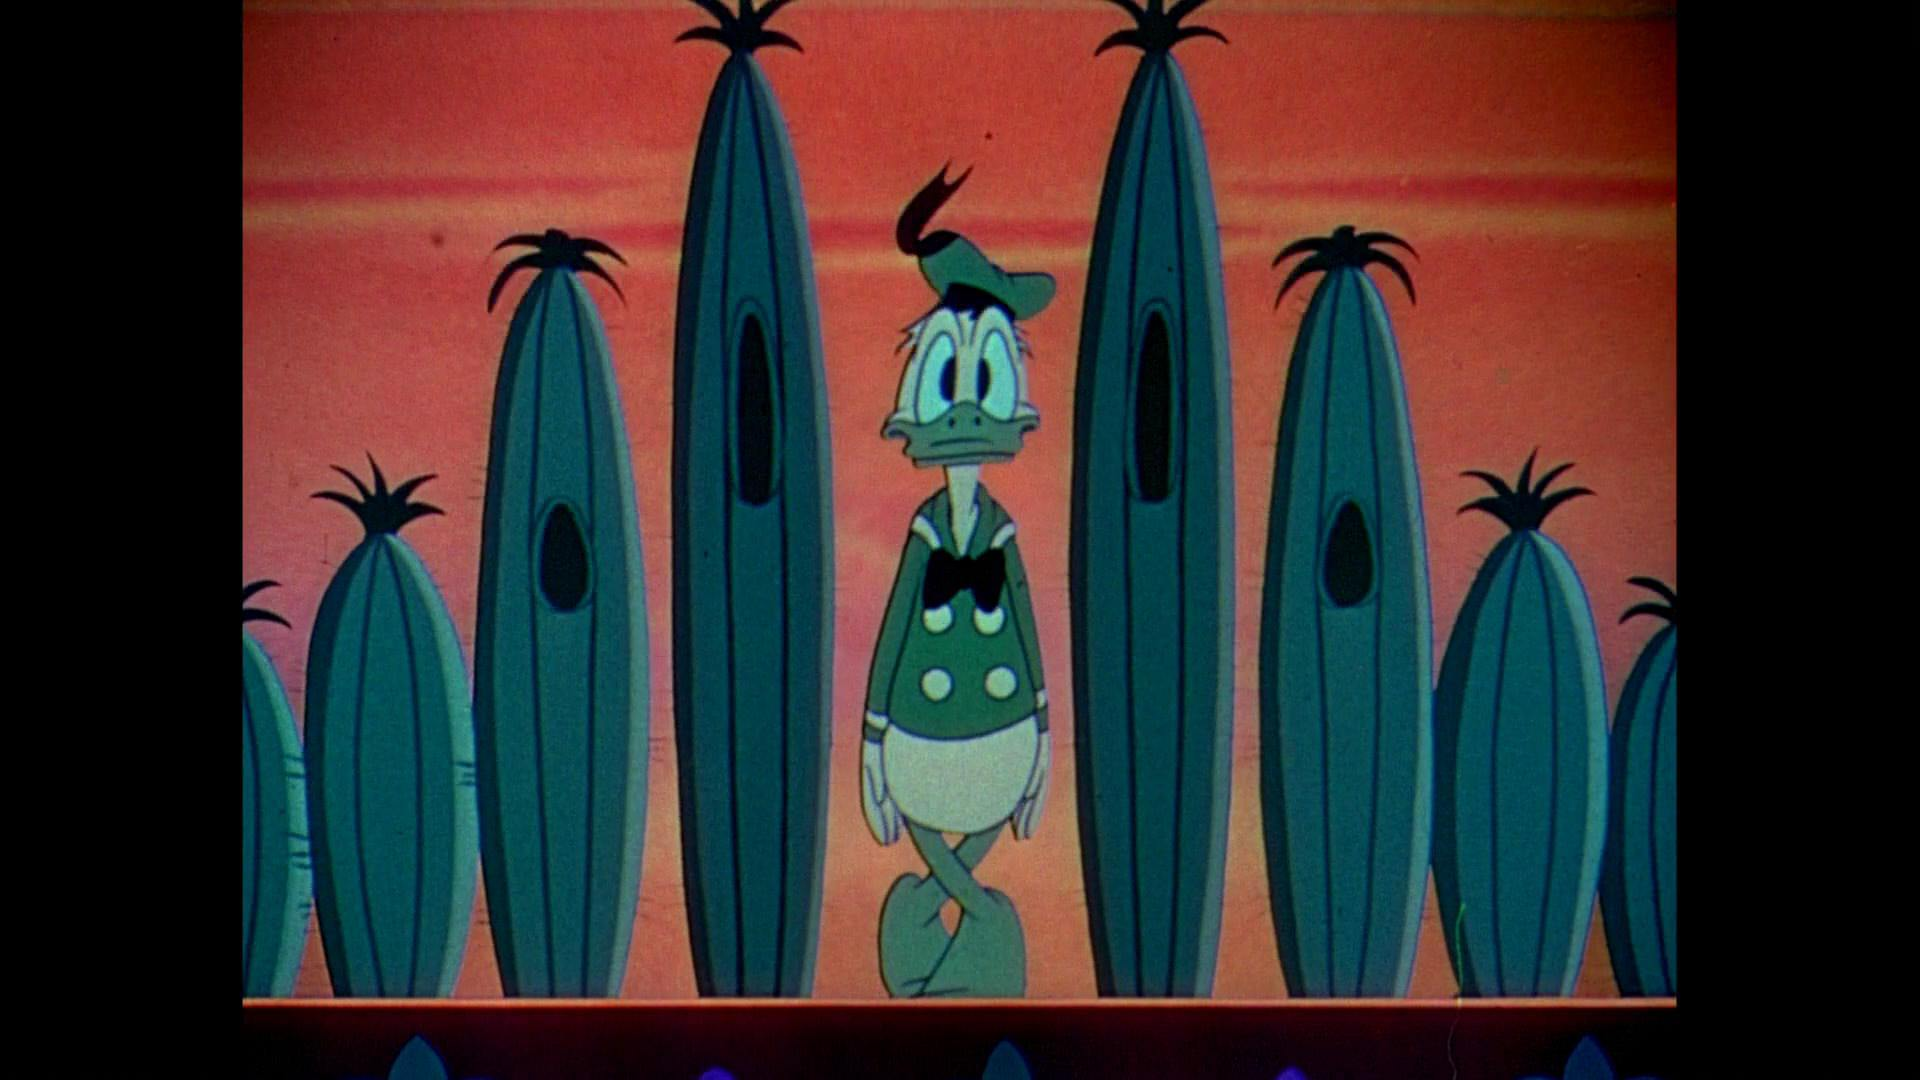 three-caballeros-disneyscreencaps.com-8008